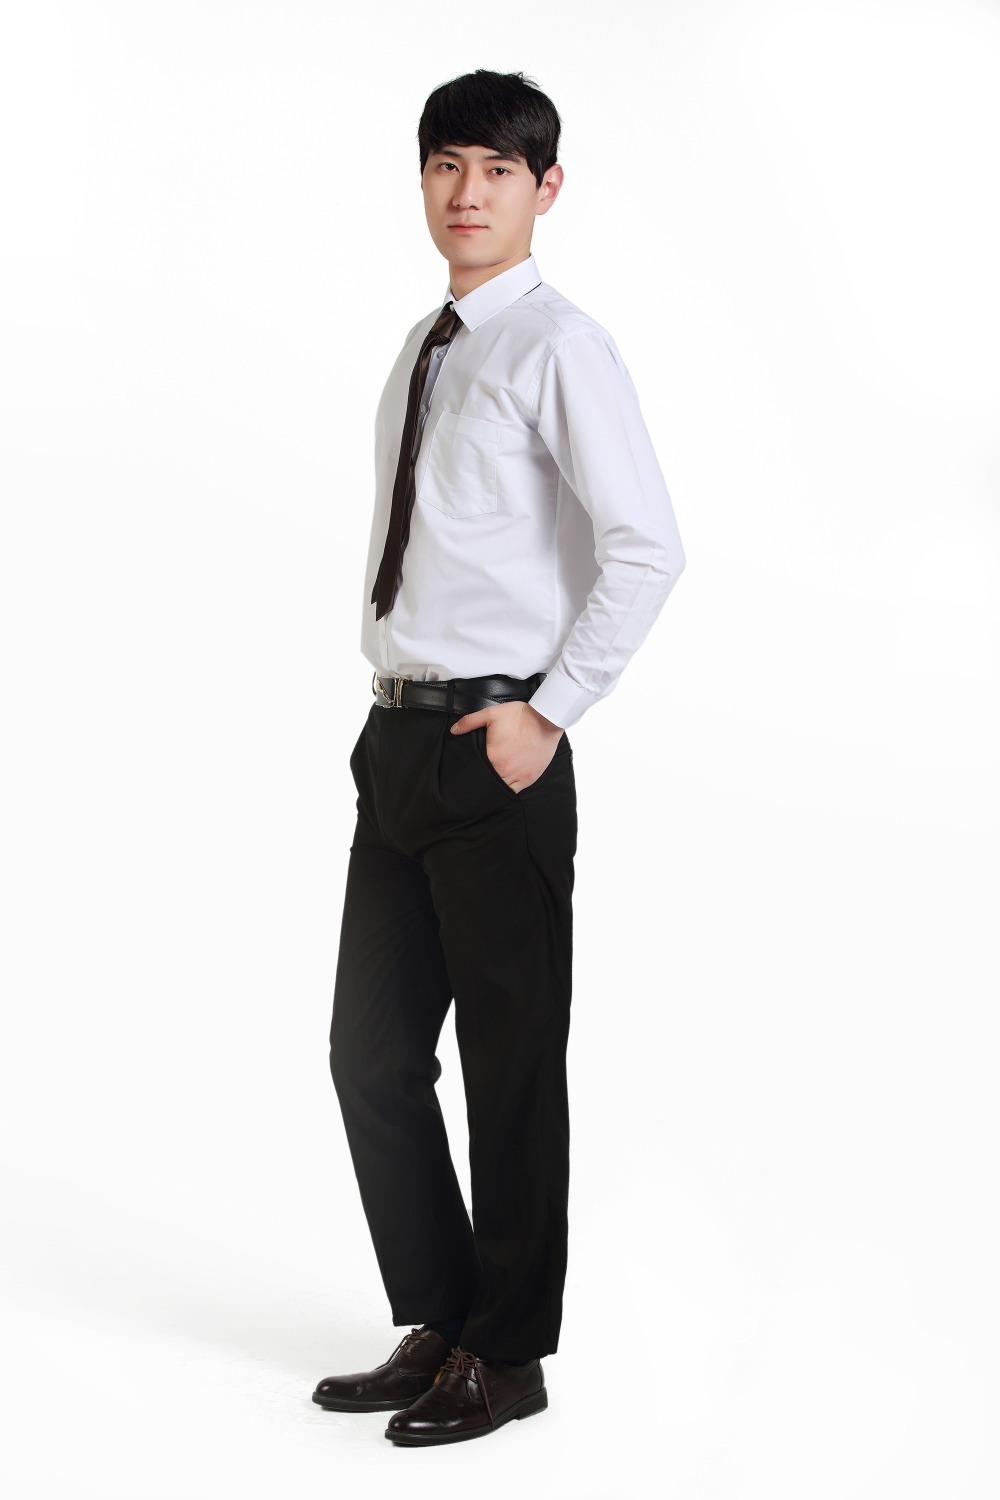 2015 OEM office suit business suit design for men white shirt and ...